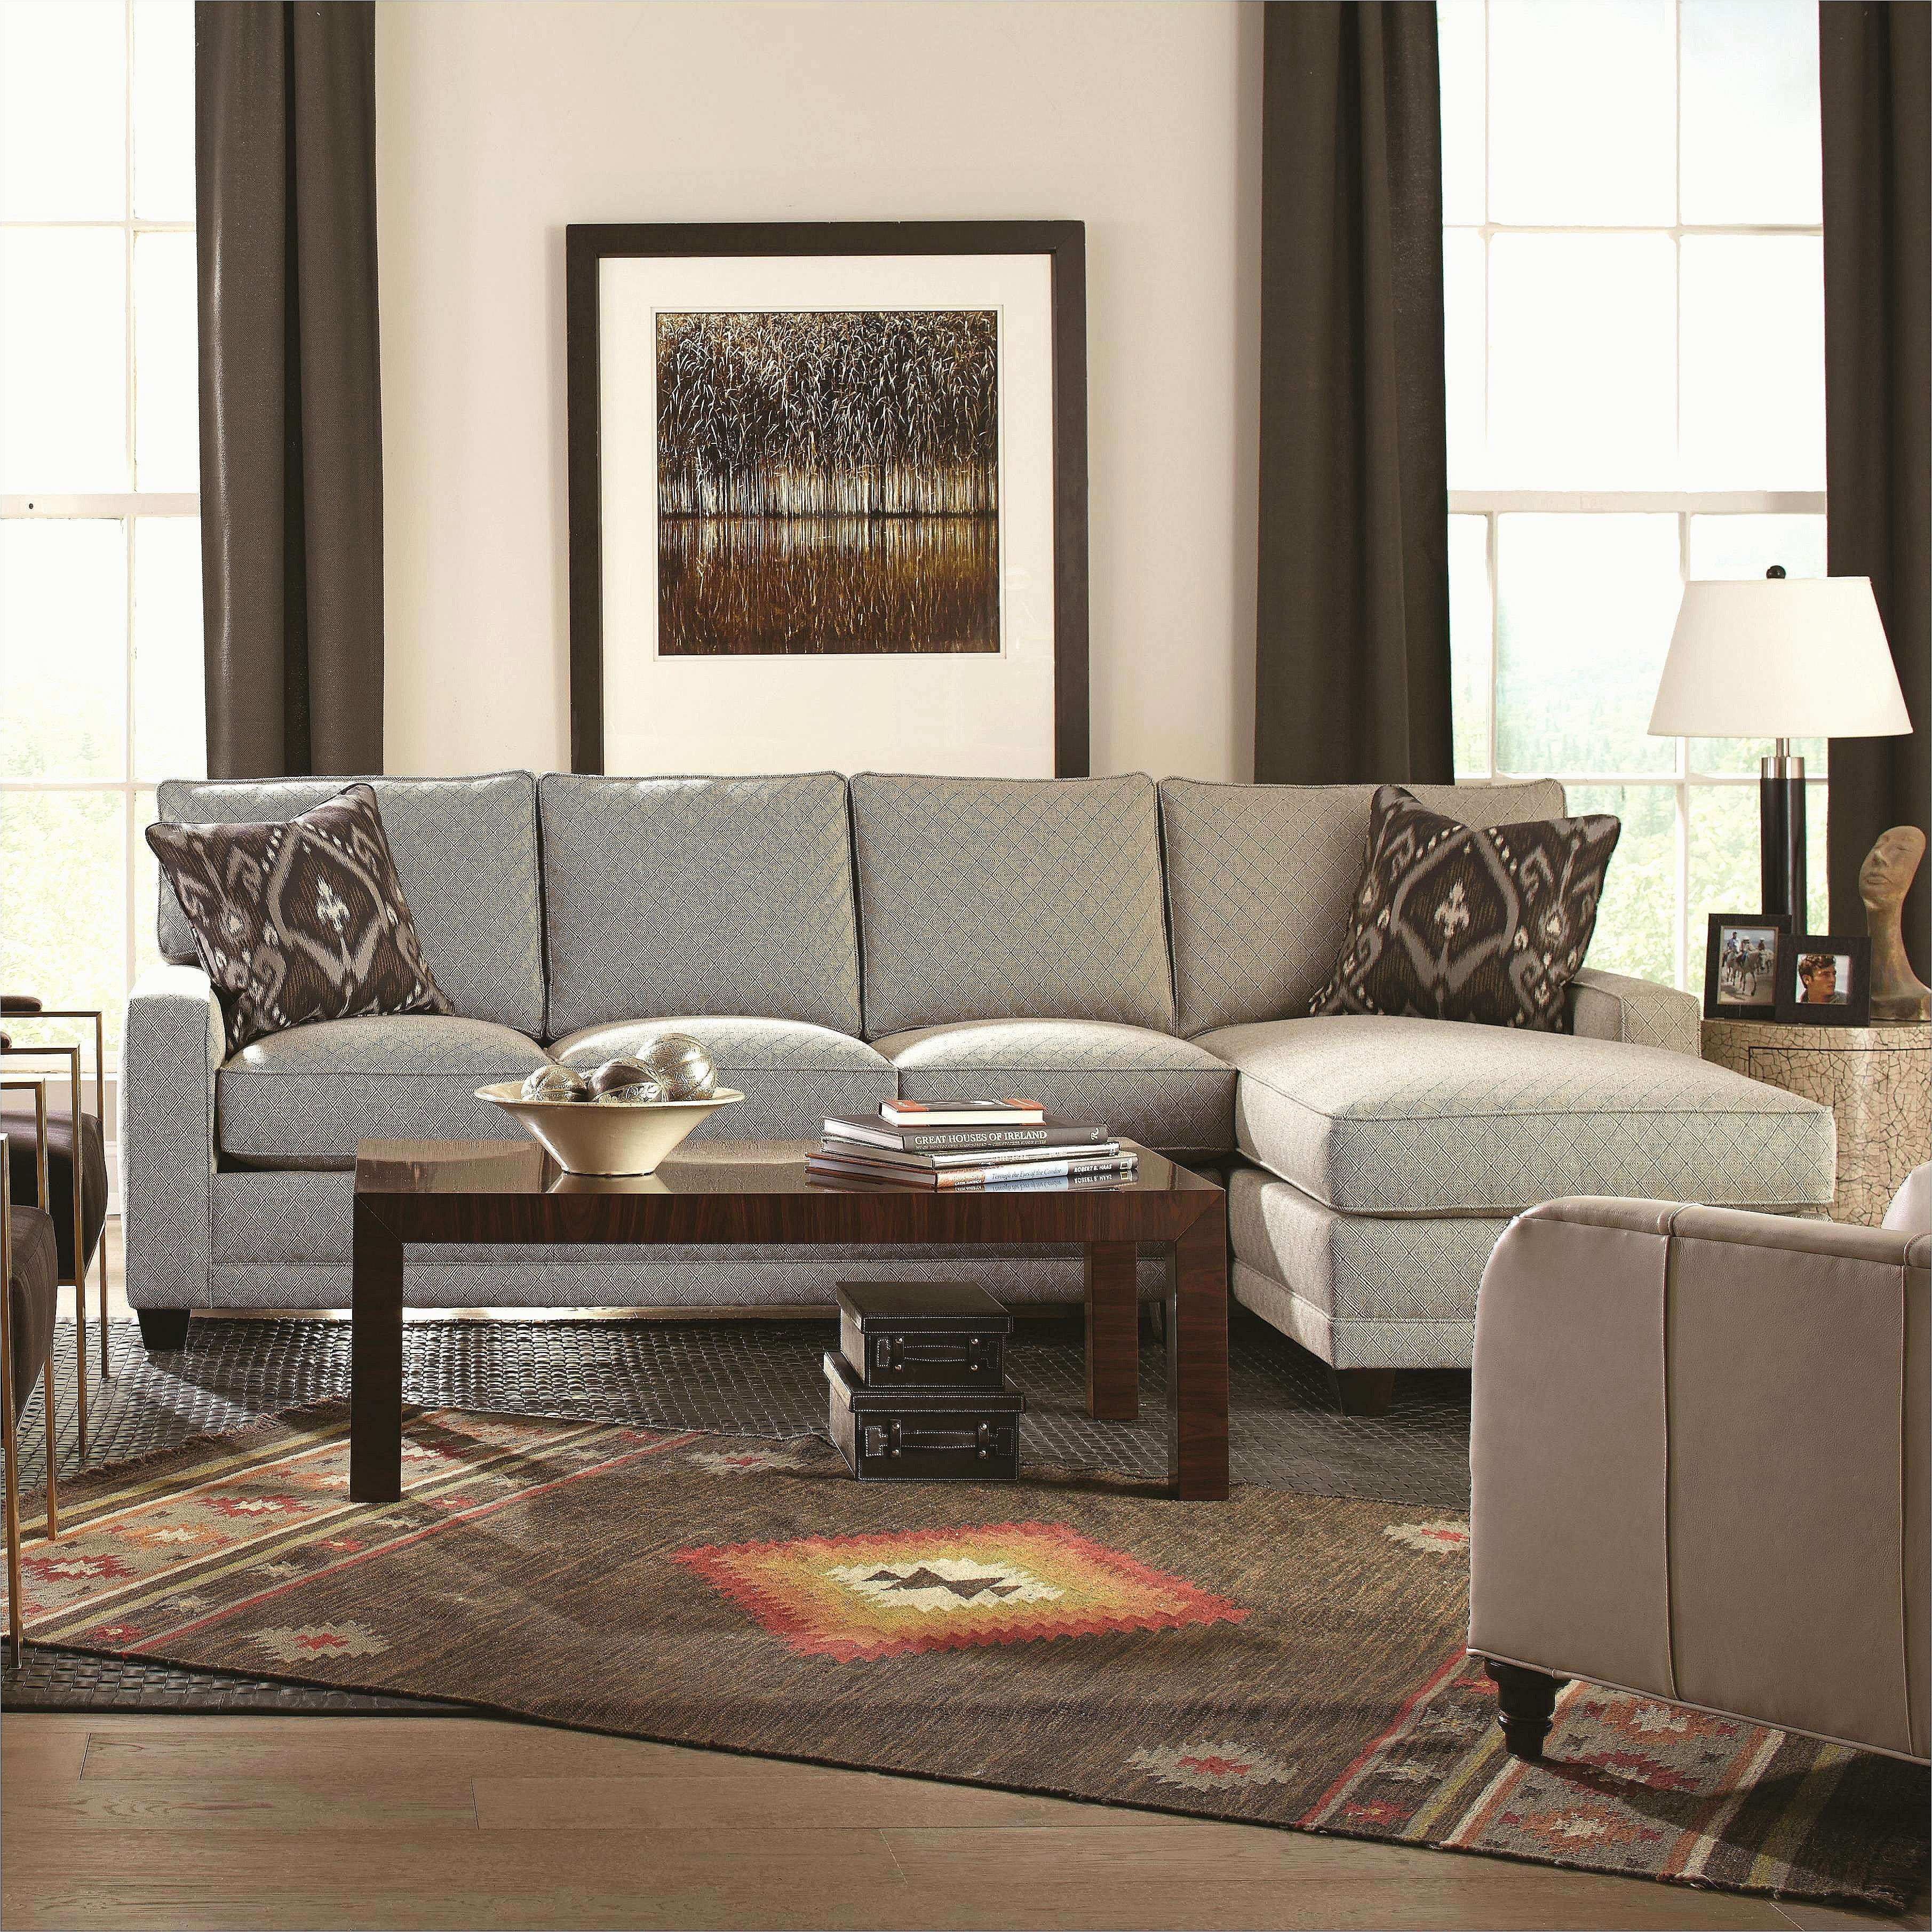 34 New Decorative Tables for Living Room